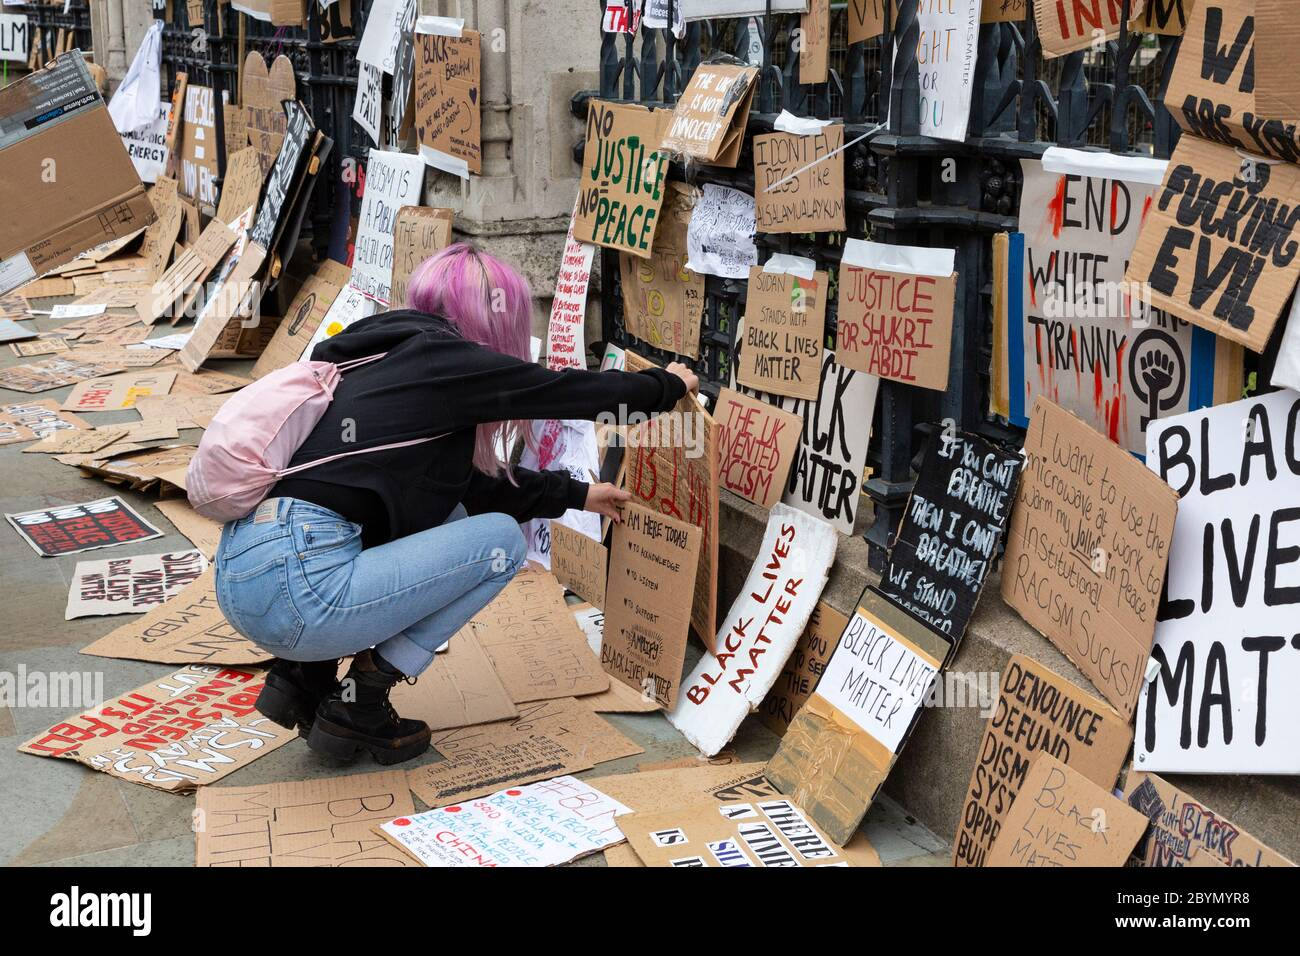 A protester lays a sign outside the Palace of Westminster after a Black Lives Matters protest, Parliament Square, London, 7 June 2020 Stock Photo